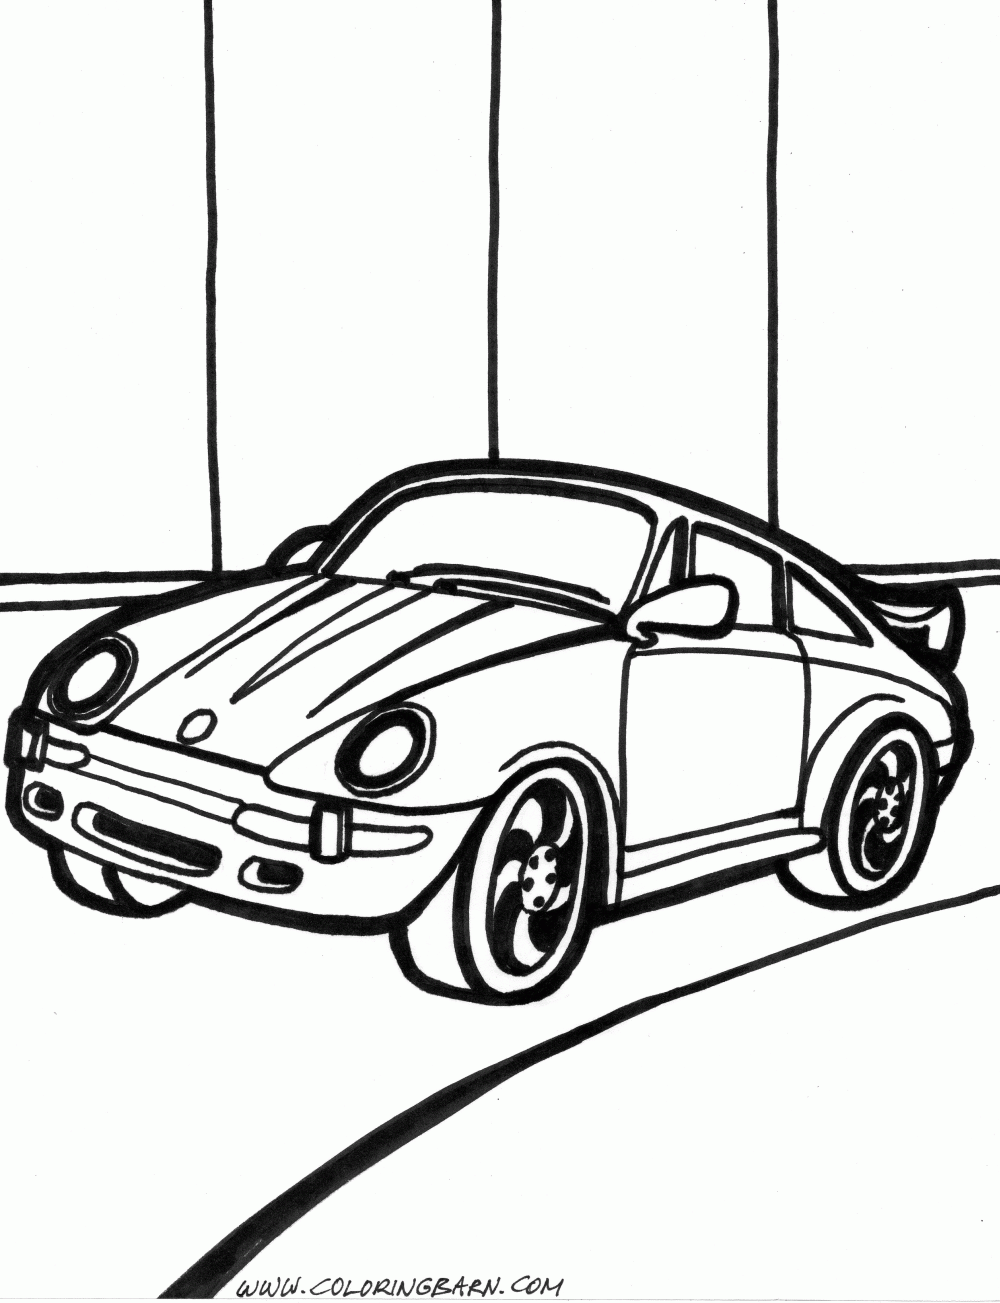 Buggy Drawing at GetDrawings.com | Free for personal use ...